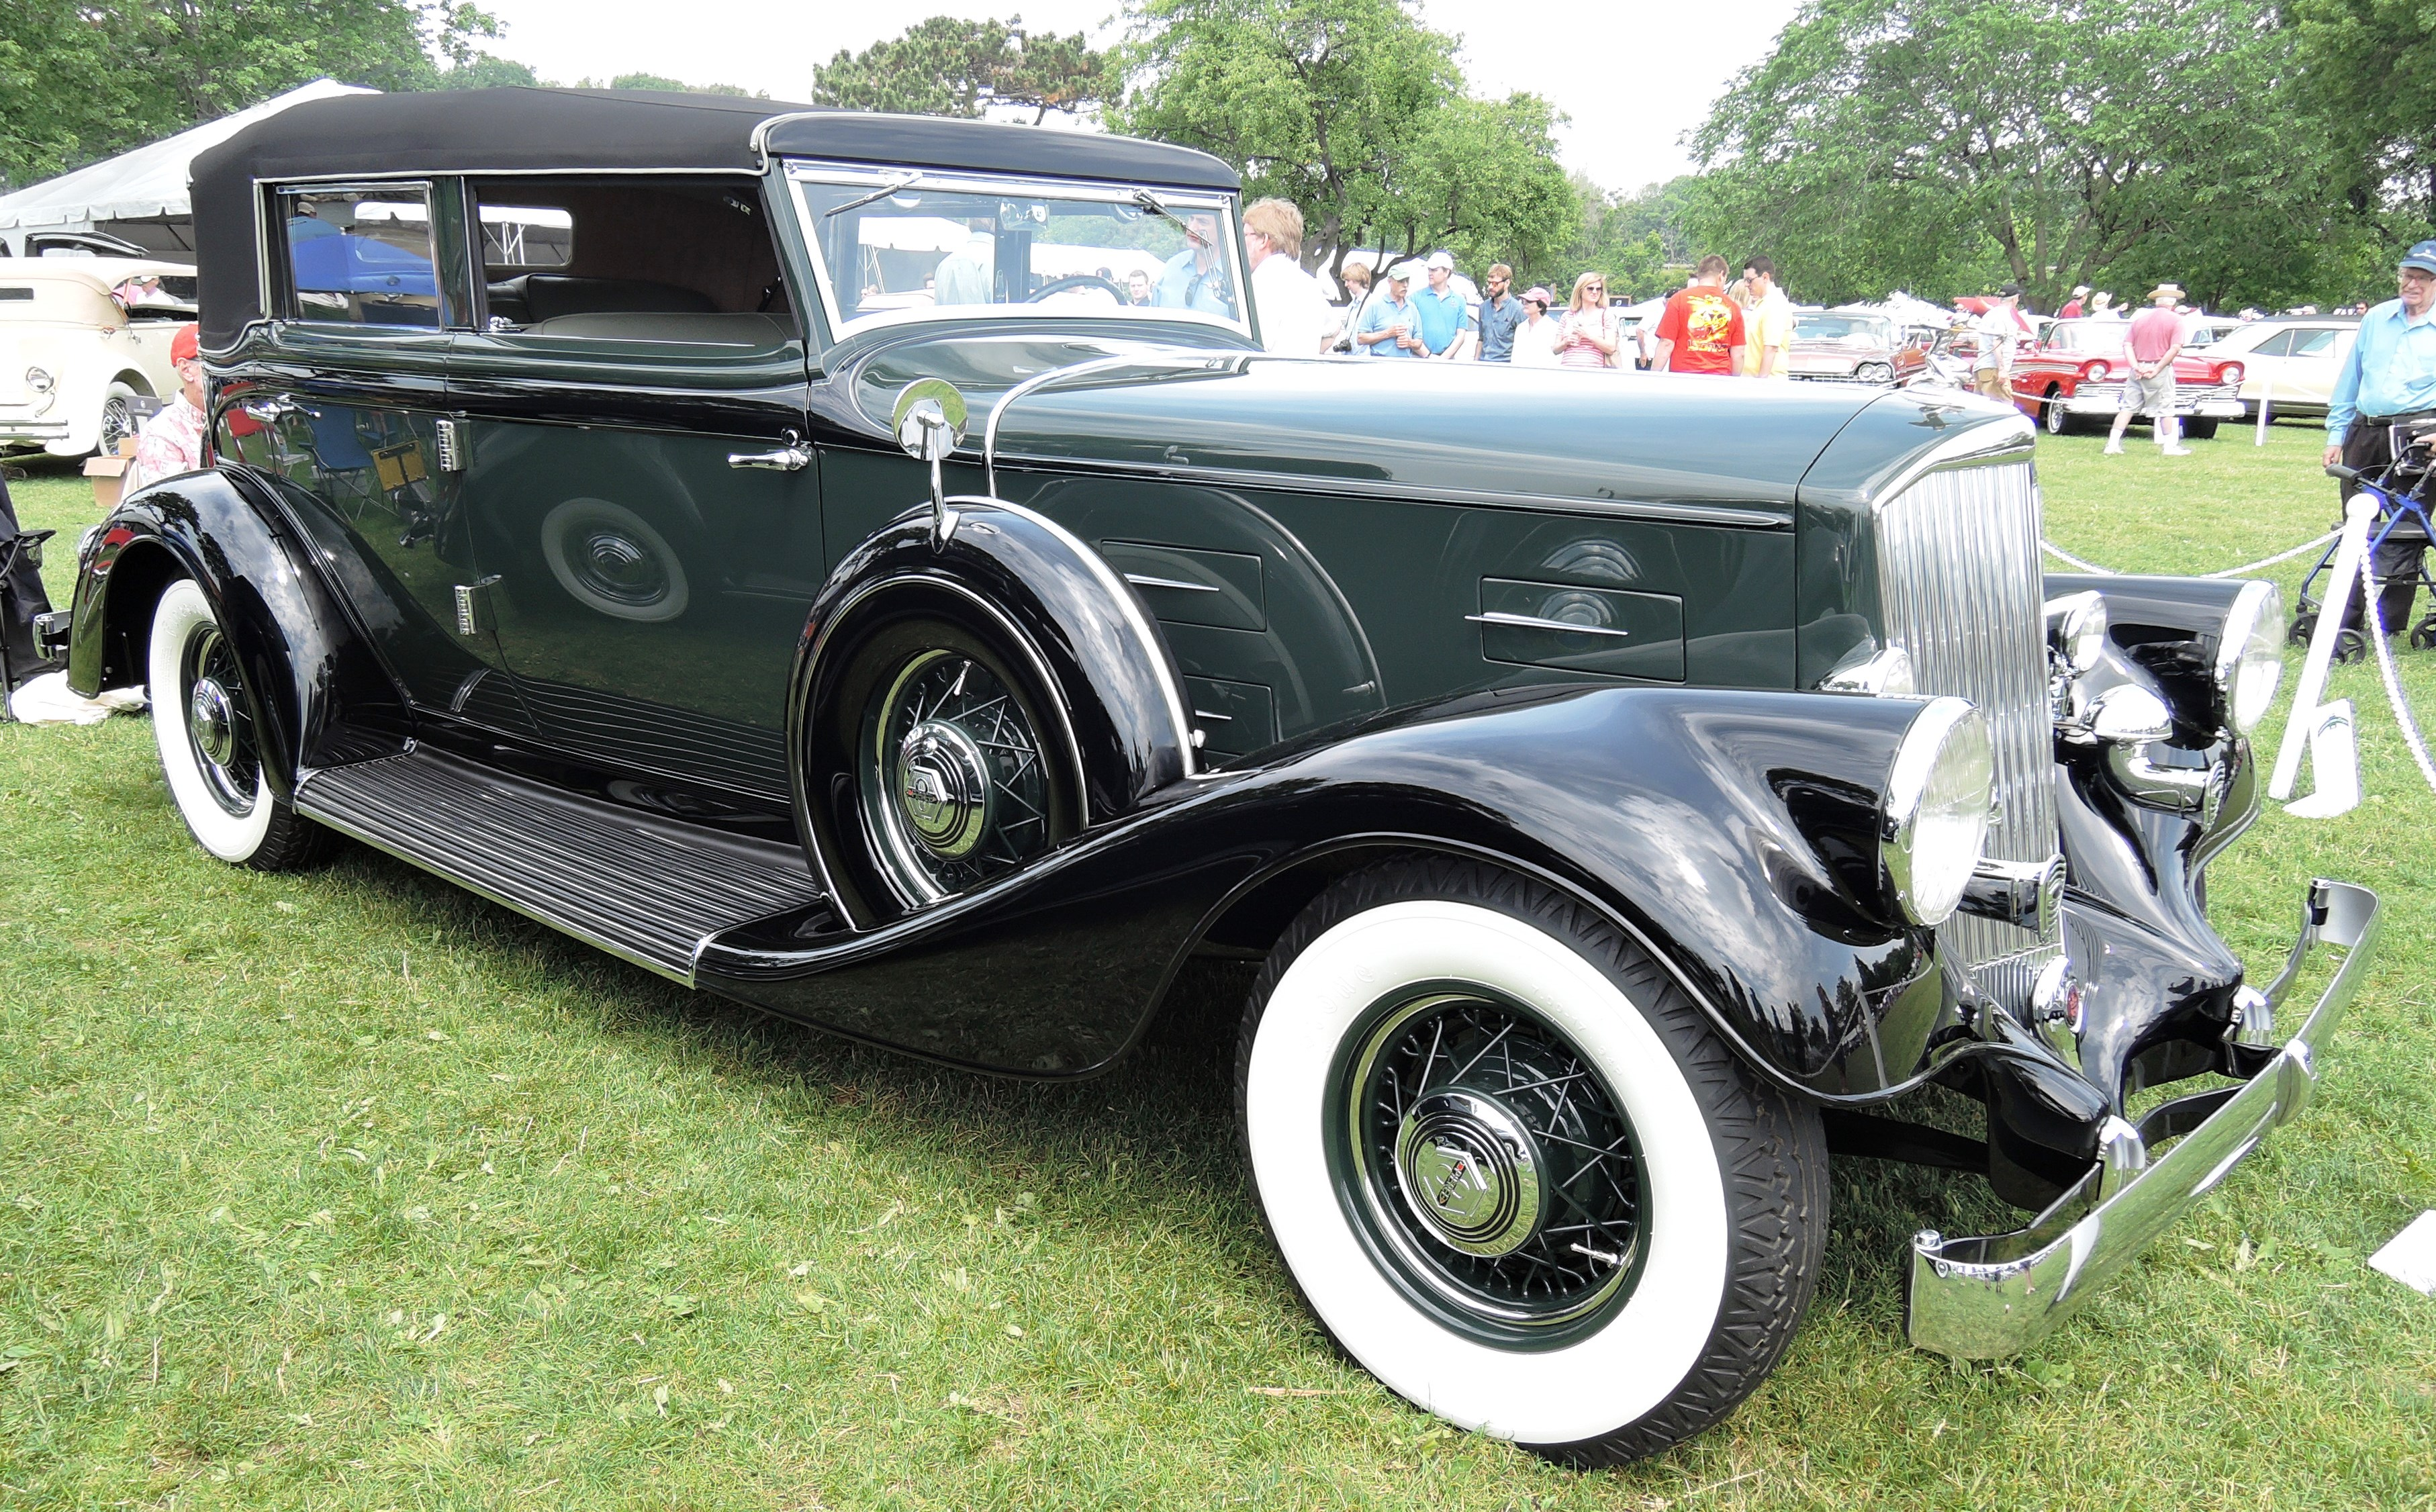 green 1934 Pierce Arrow 840 A - greenwich concours